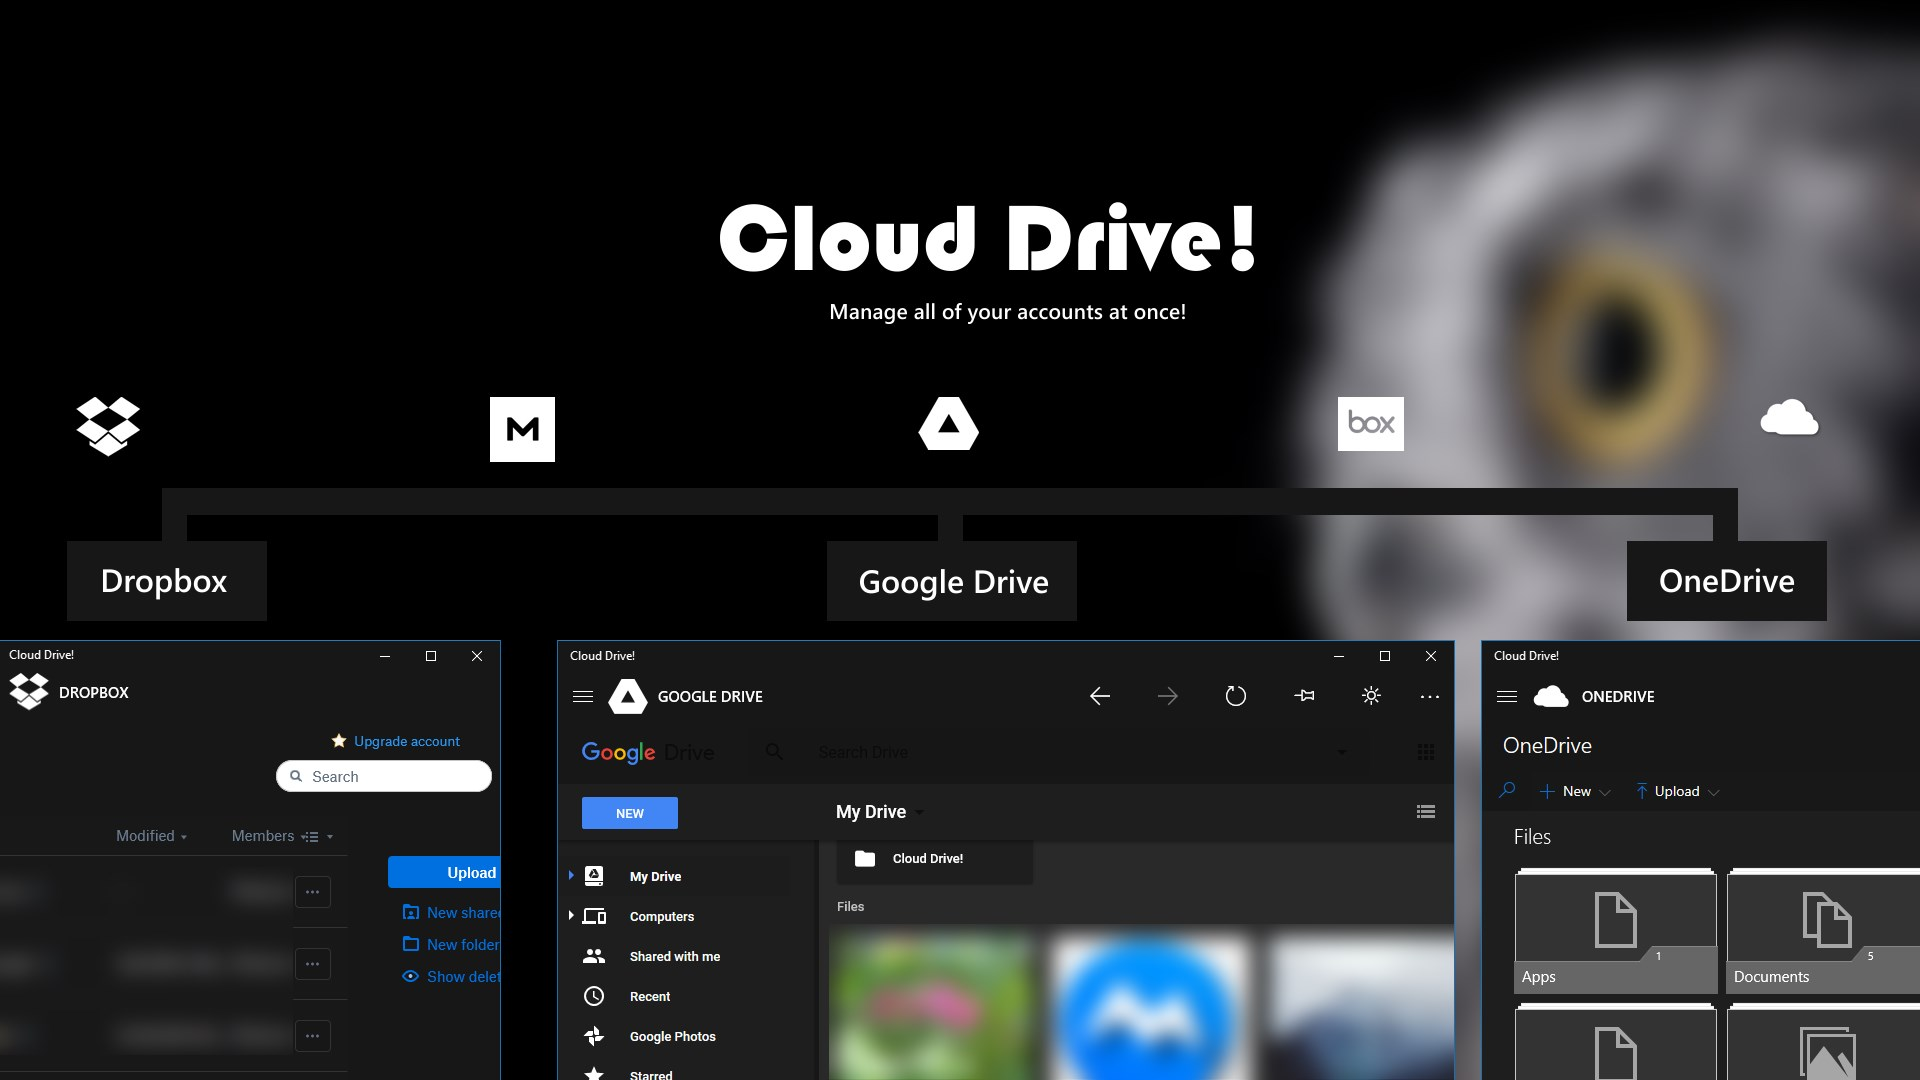 Get Cloud Drive! : OneDrive, Dropbox, Google Drive and more